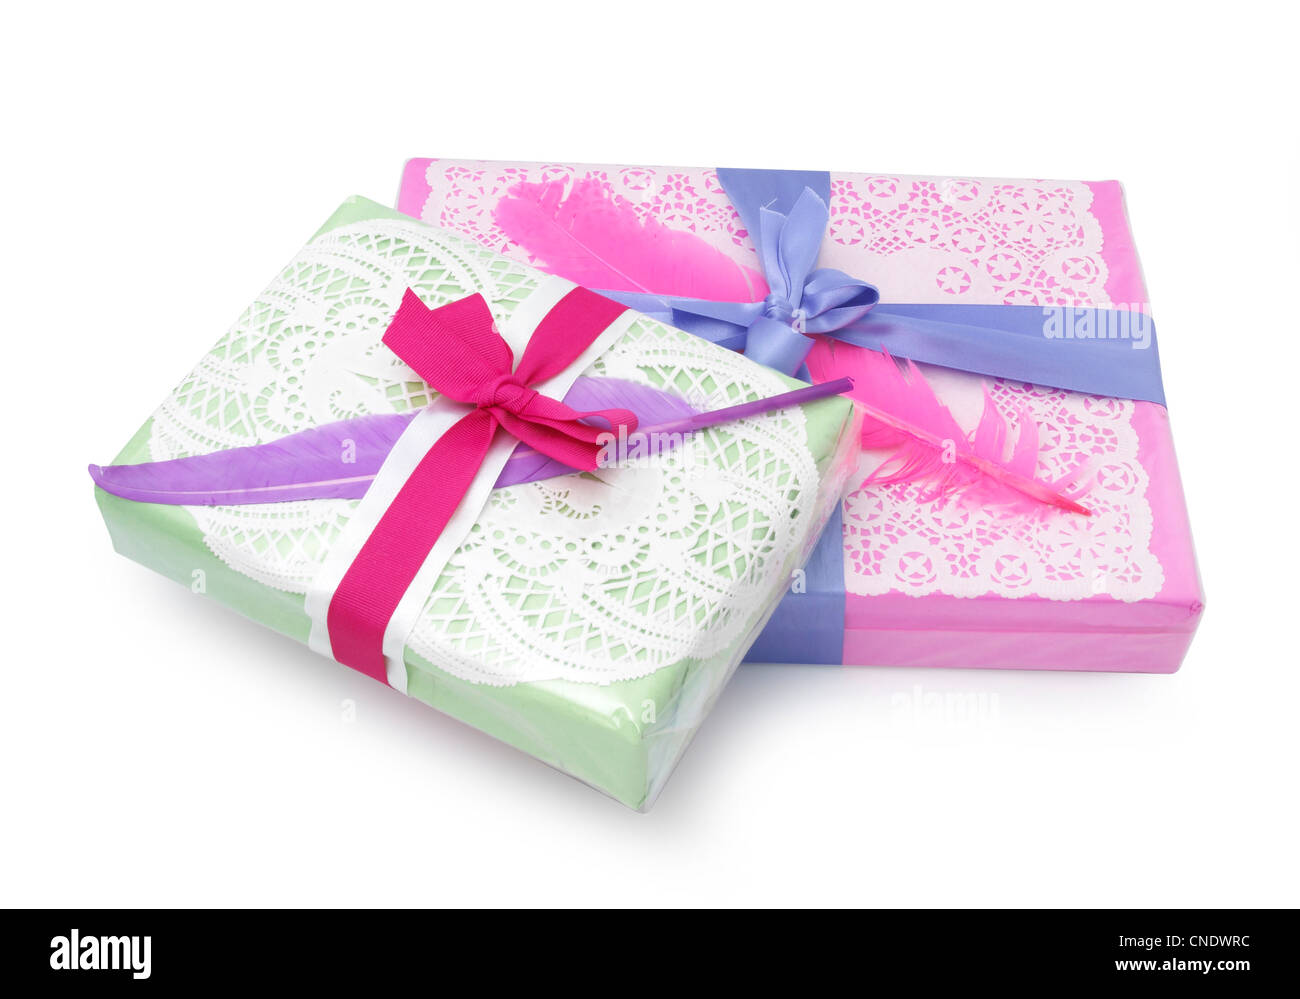 Two gift wrapped presents stock photo 47634144 alamy two gift wrapped presents negle Images